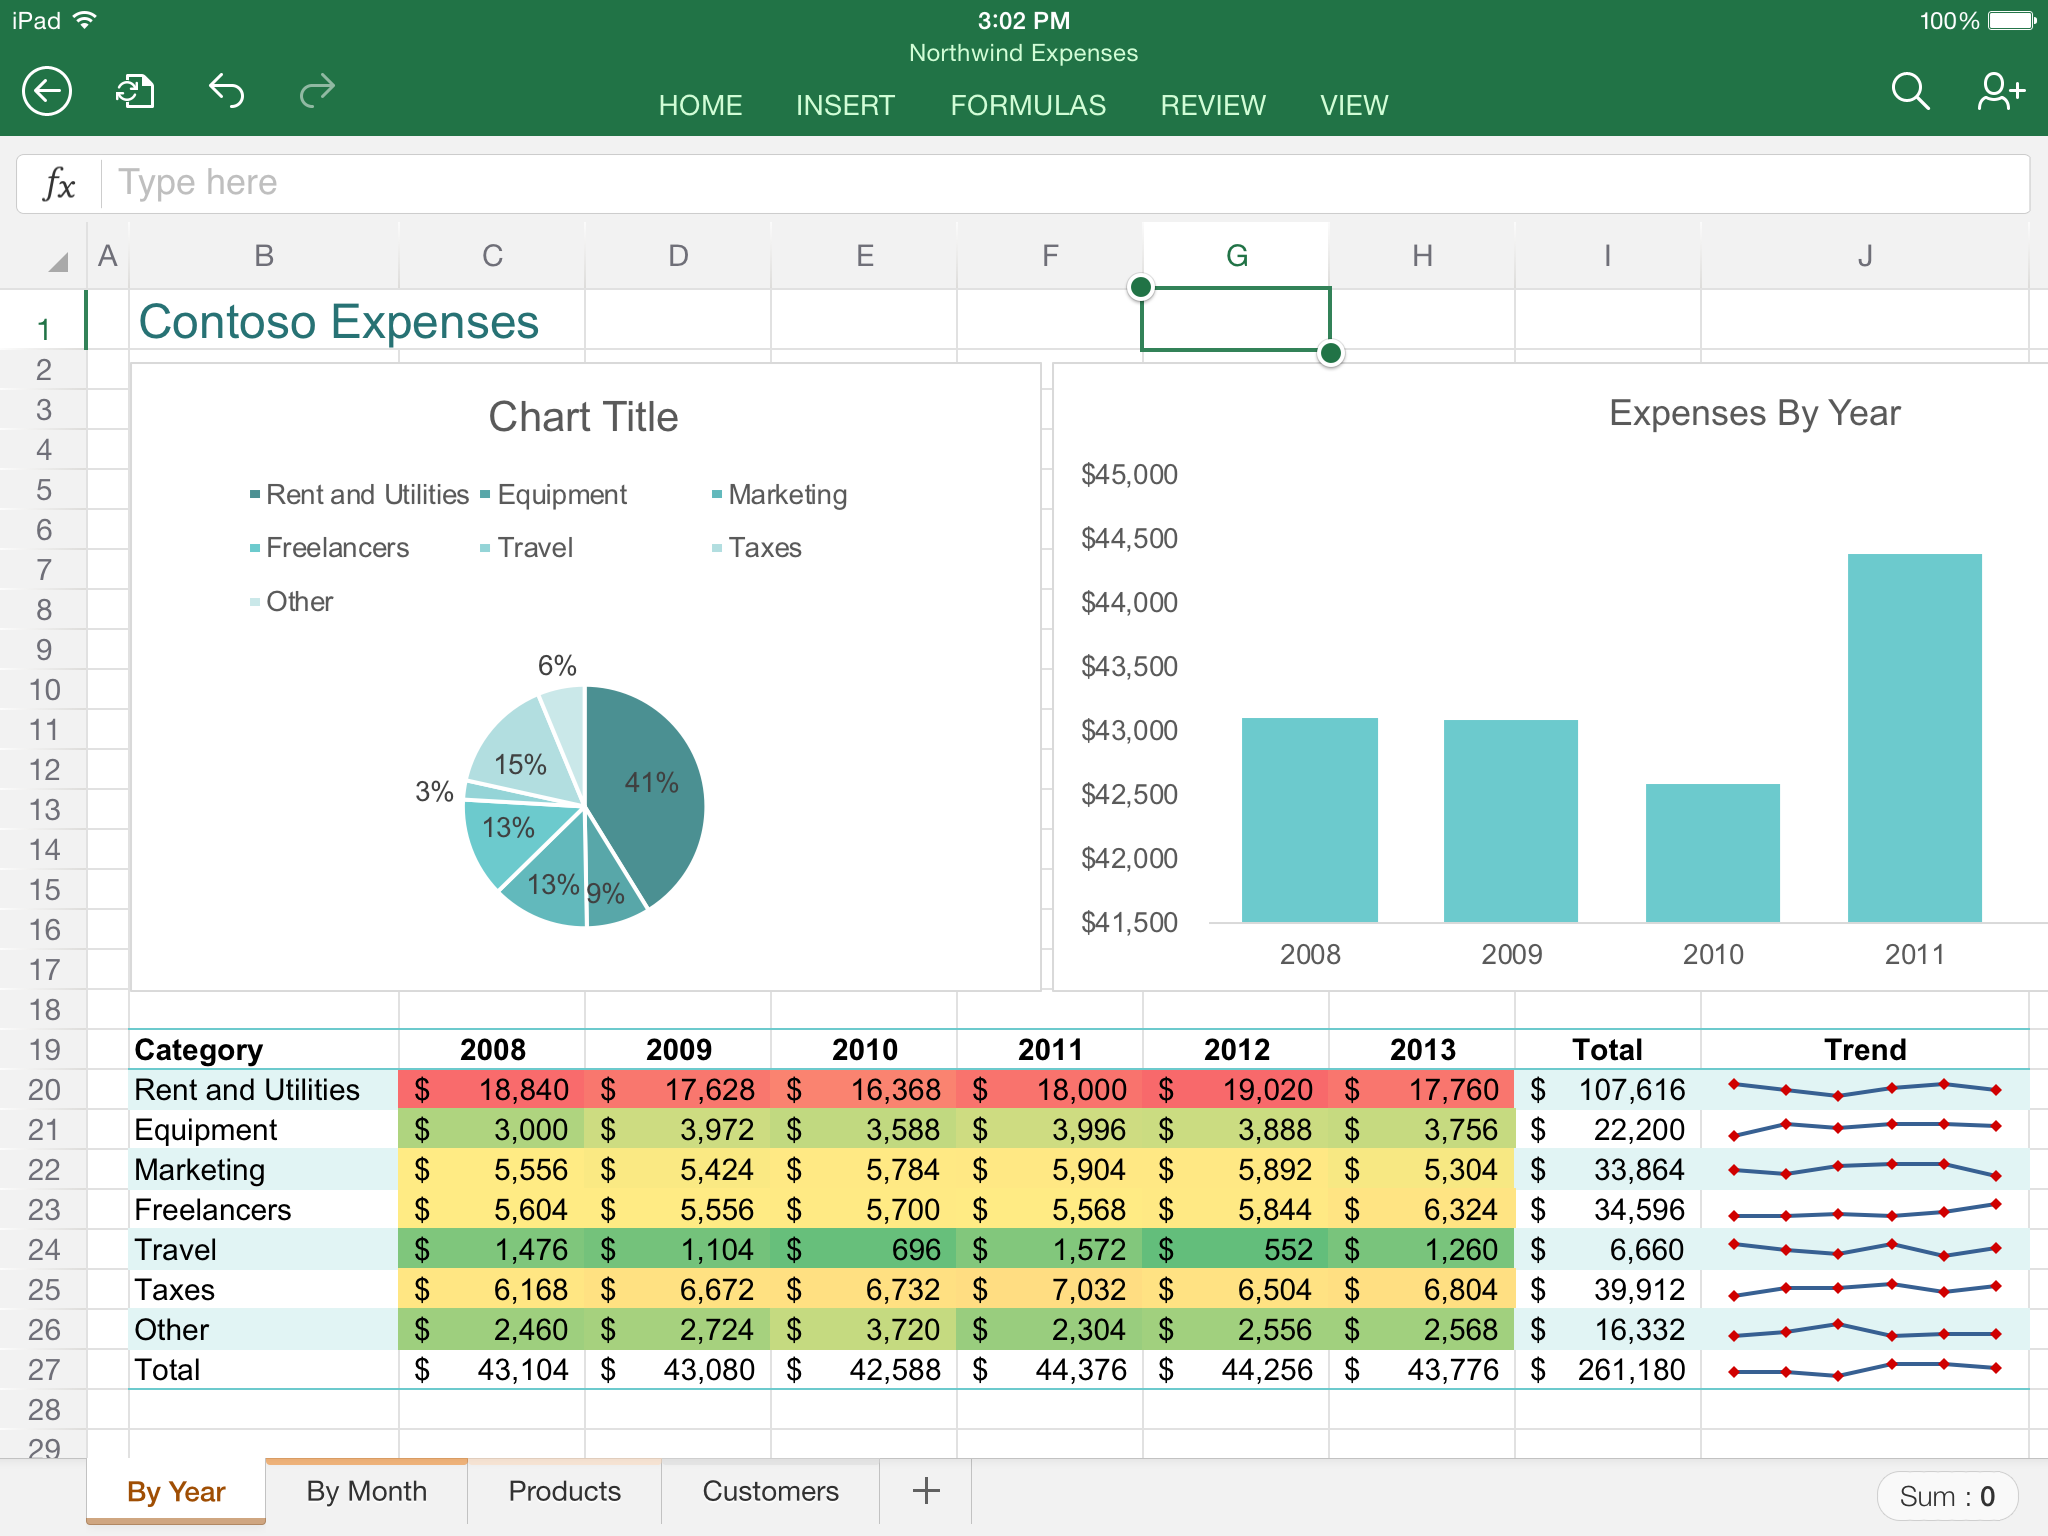 Ediblewildsus  Unique App Highlight Excel  Mobile Digital Now With Remarkable Excel In Action With Amazing Cash Flow Analysis Excel Also Excel For In Addition Excel Make Drop Down List And How To Use The Quick Analysis Tool In Excel As Well As Excel Round To Nearest  Additionally Excel Hidden Sheets From Youstonybrookedu With Ediblewildsus  Remarkable App Highlight Excel  Mobile Digital Now With Amazing Excel In Action And Unique Cash Flow Analysis Excel Also Excel For In Addition Excel Make Drop Down List From Youstonybrookedu